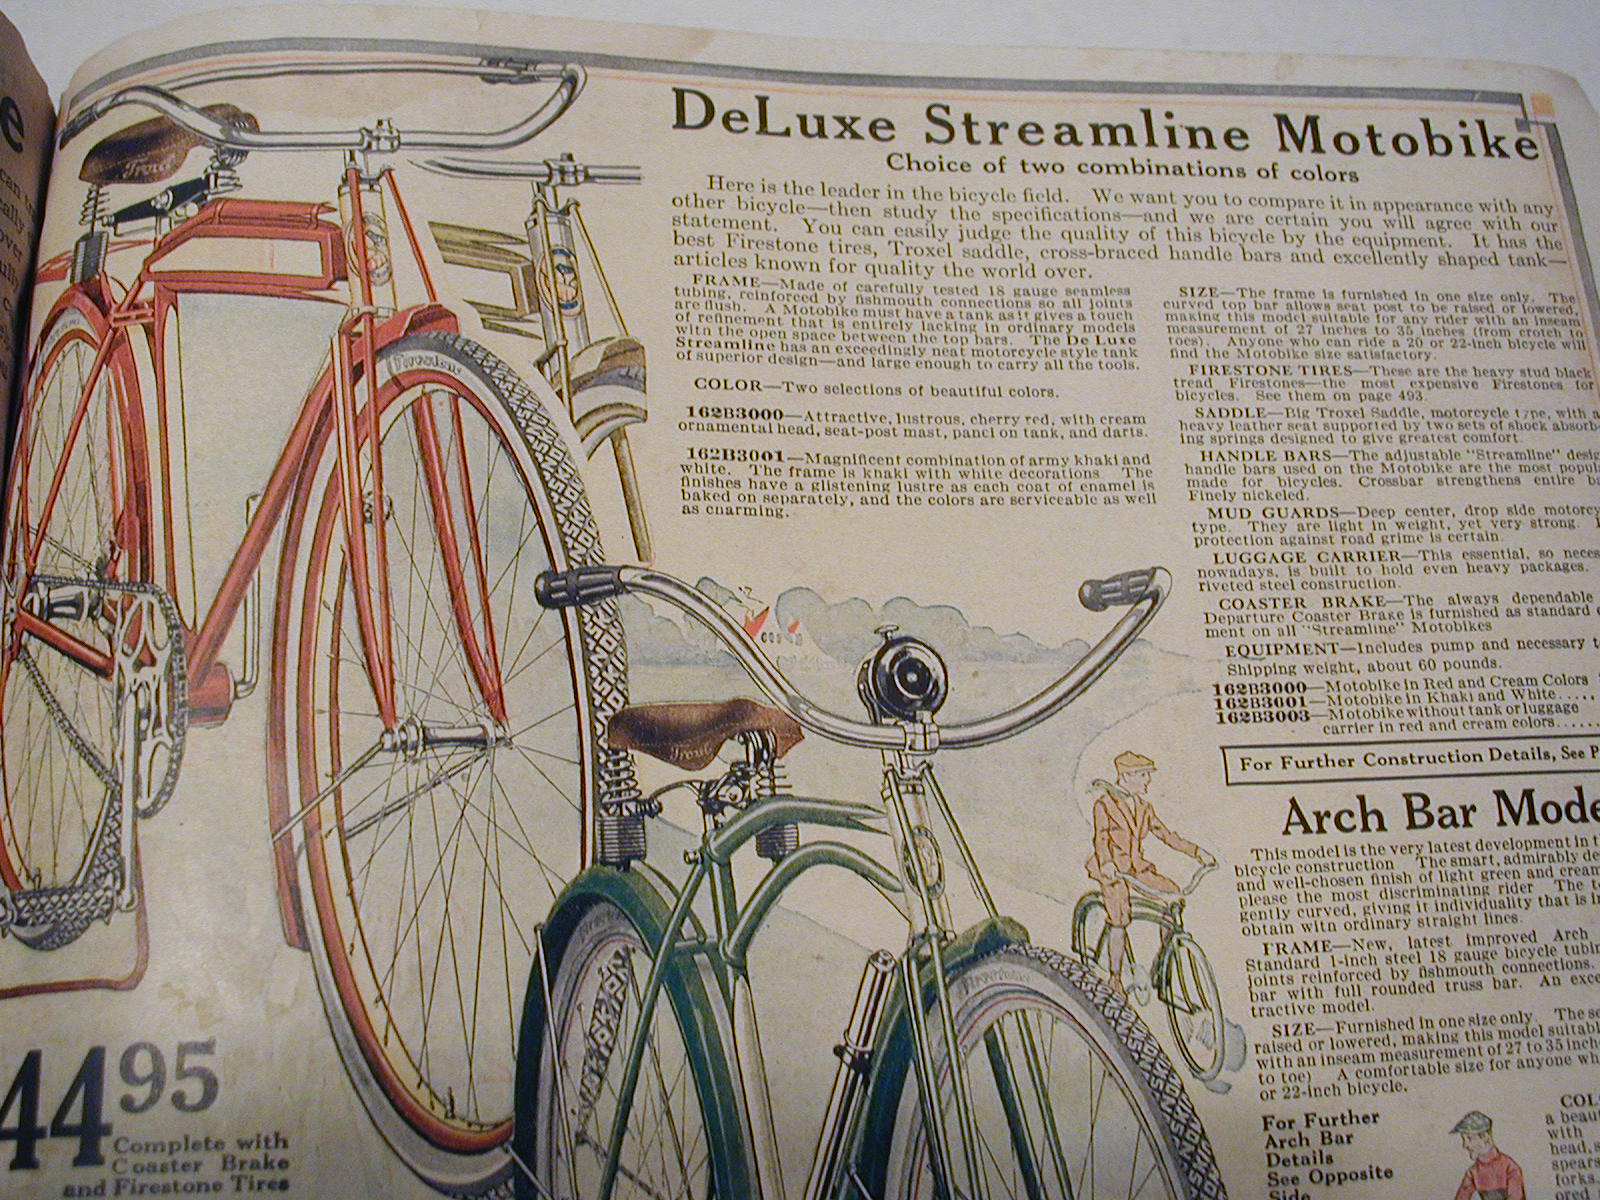 Wards 1920 catalog (schwinn).jpg